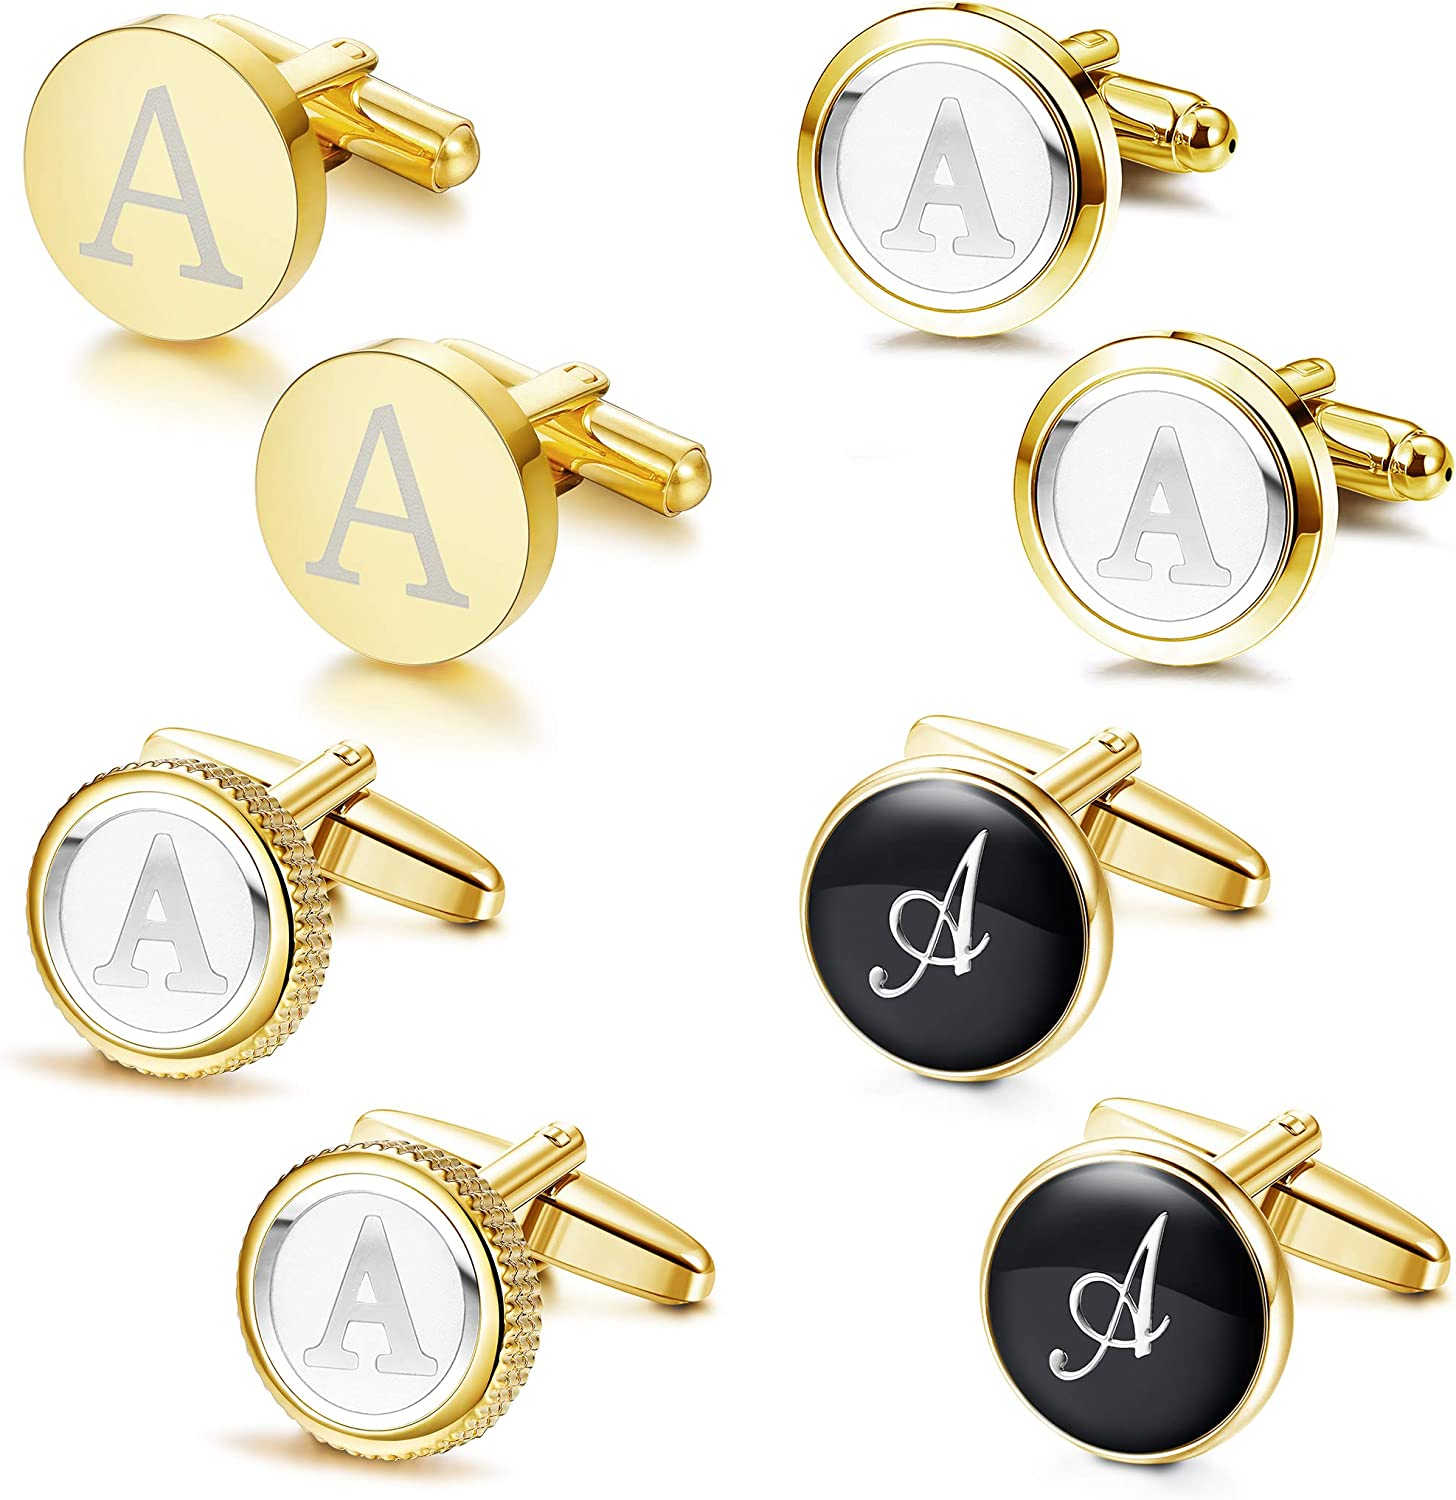 LOLIAS Mens Cufflinks Set Alphabet Letter Cufflinks Formal Business Wedding Shirts Birthday Father's Gifts A-Z